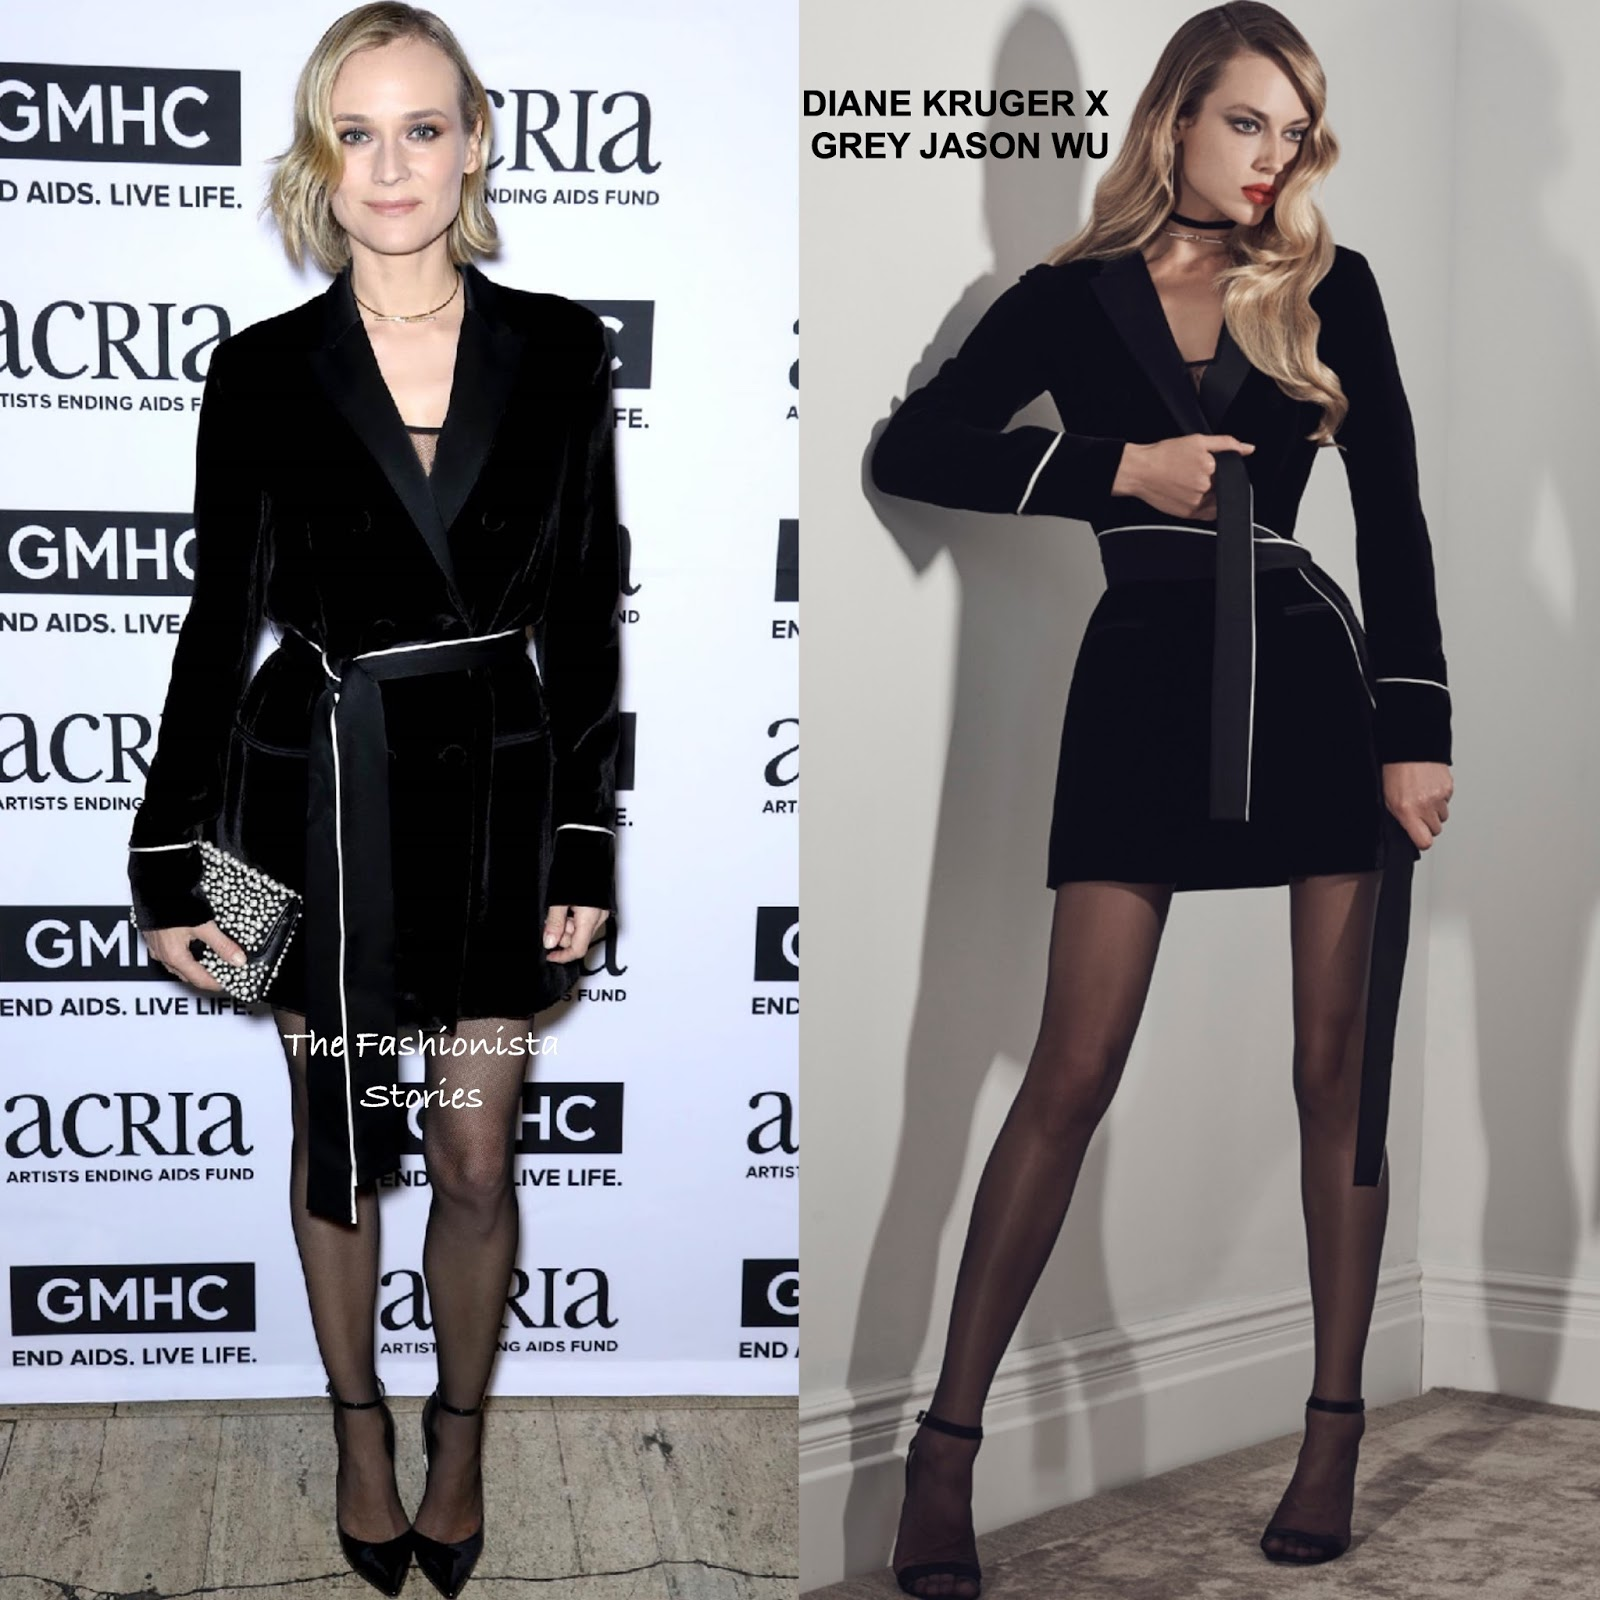 Diane kruger pantyhose All